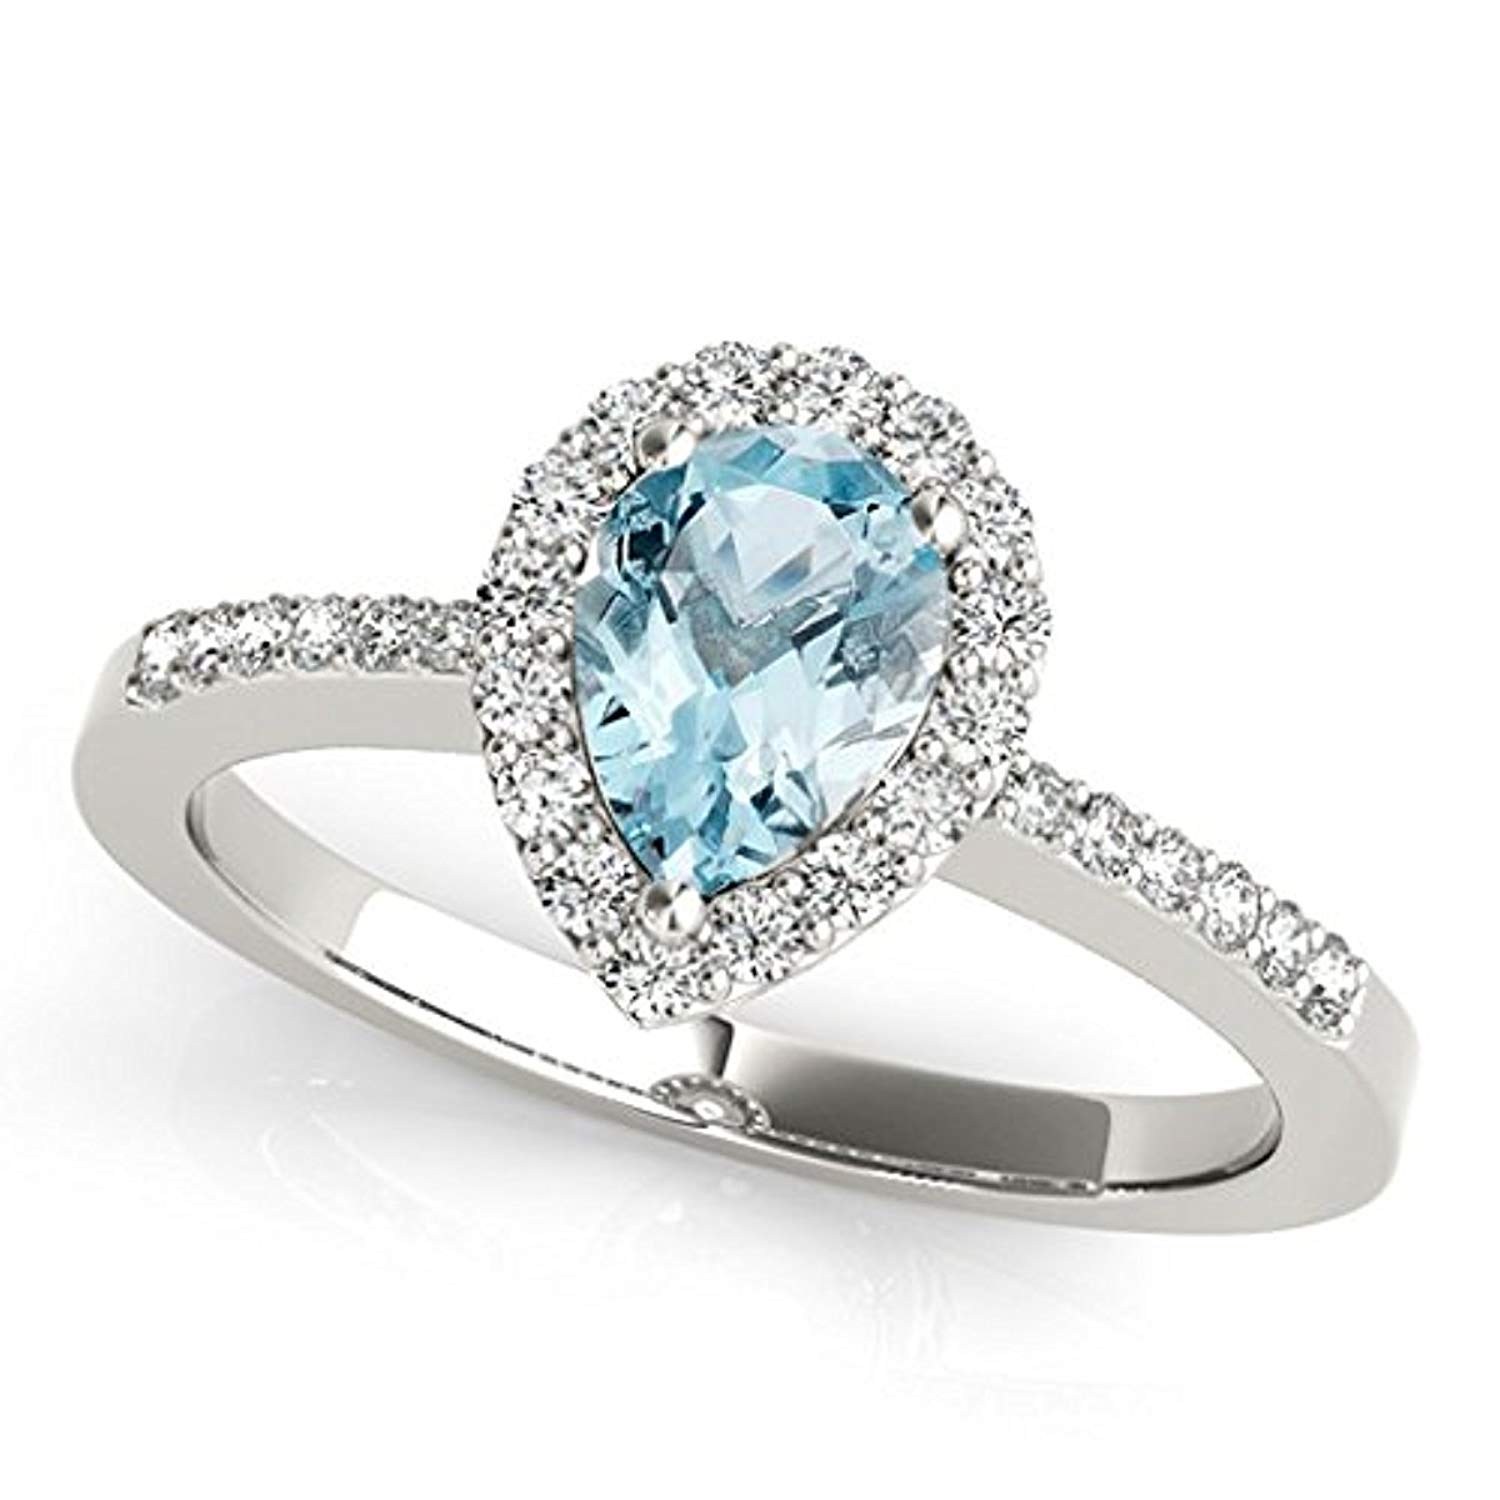 tusakha 1.80ctw Pear Shaped Created Blue Topaz /& White CZ Diamond 14k Rose Gold Over .925 Sterling Silver Halo Teardrop Engagement Ring For Women